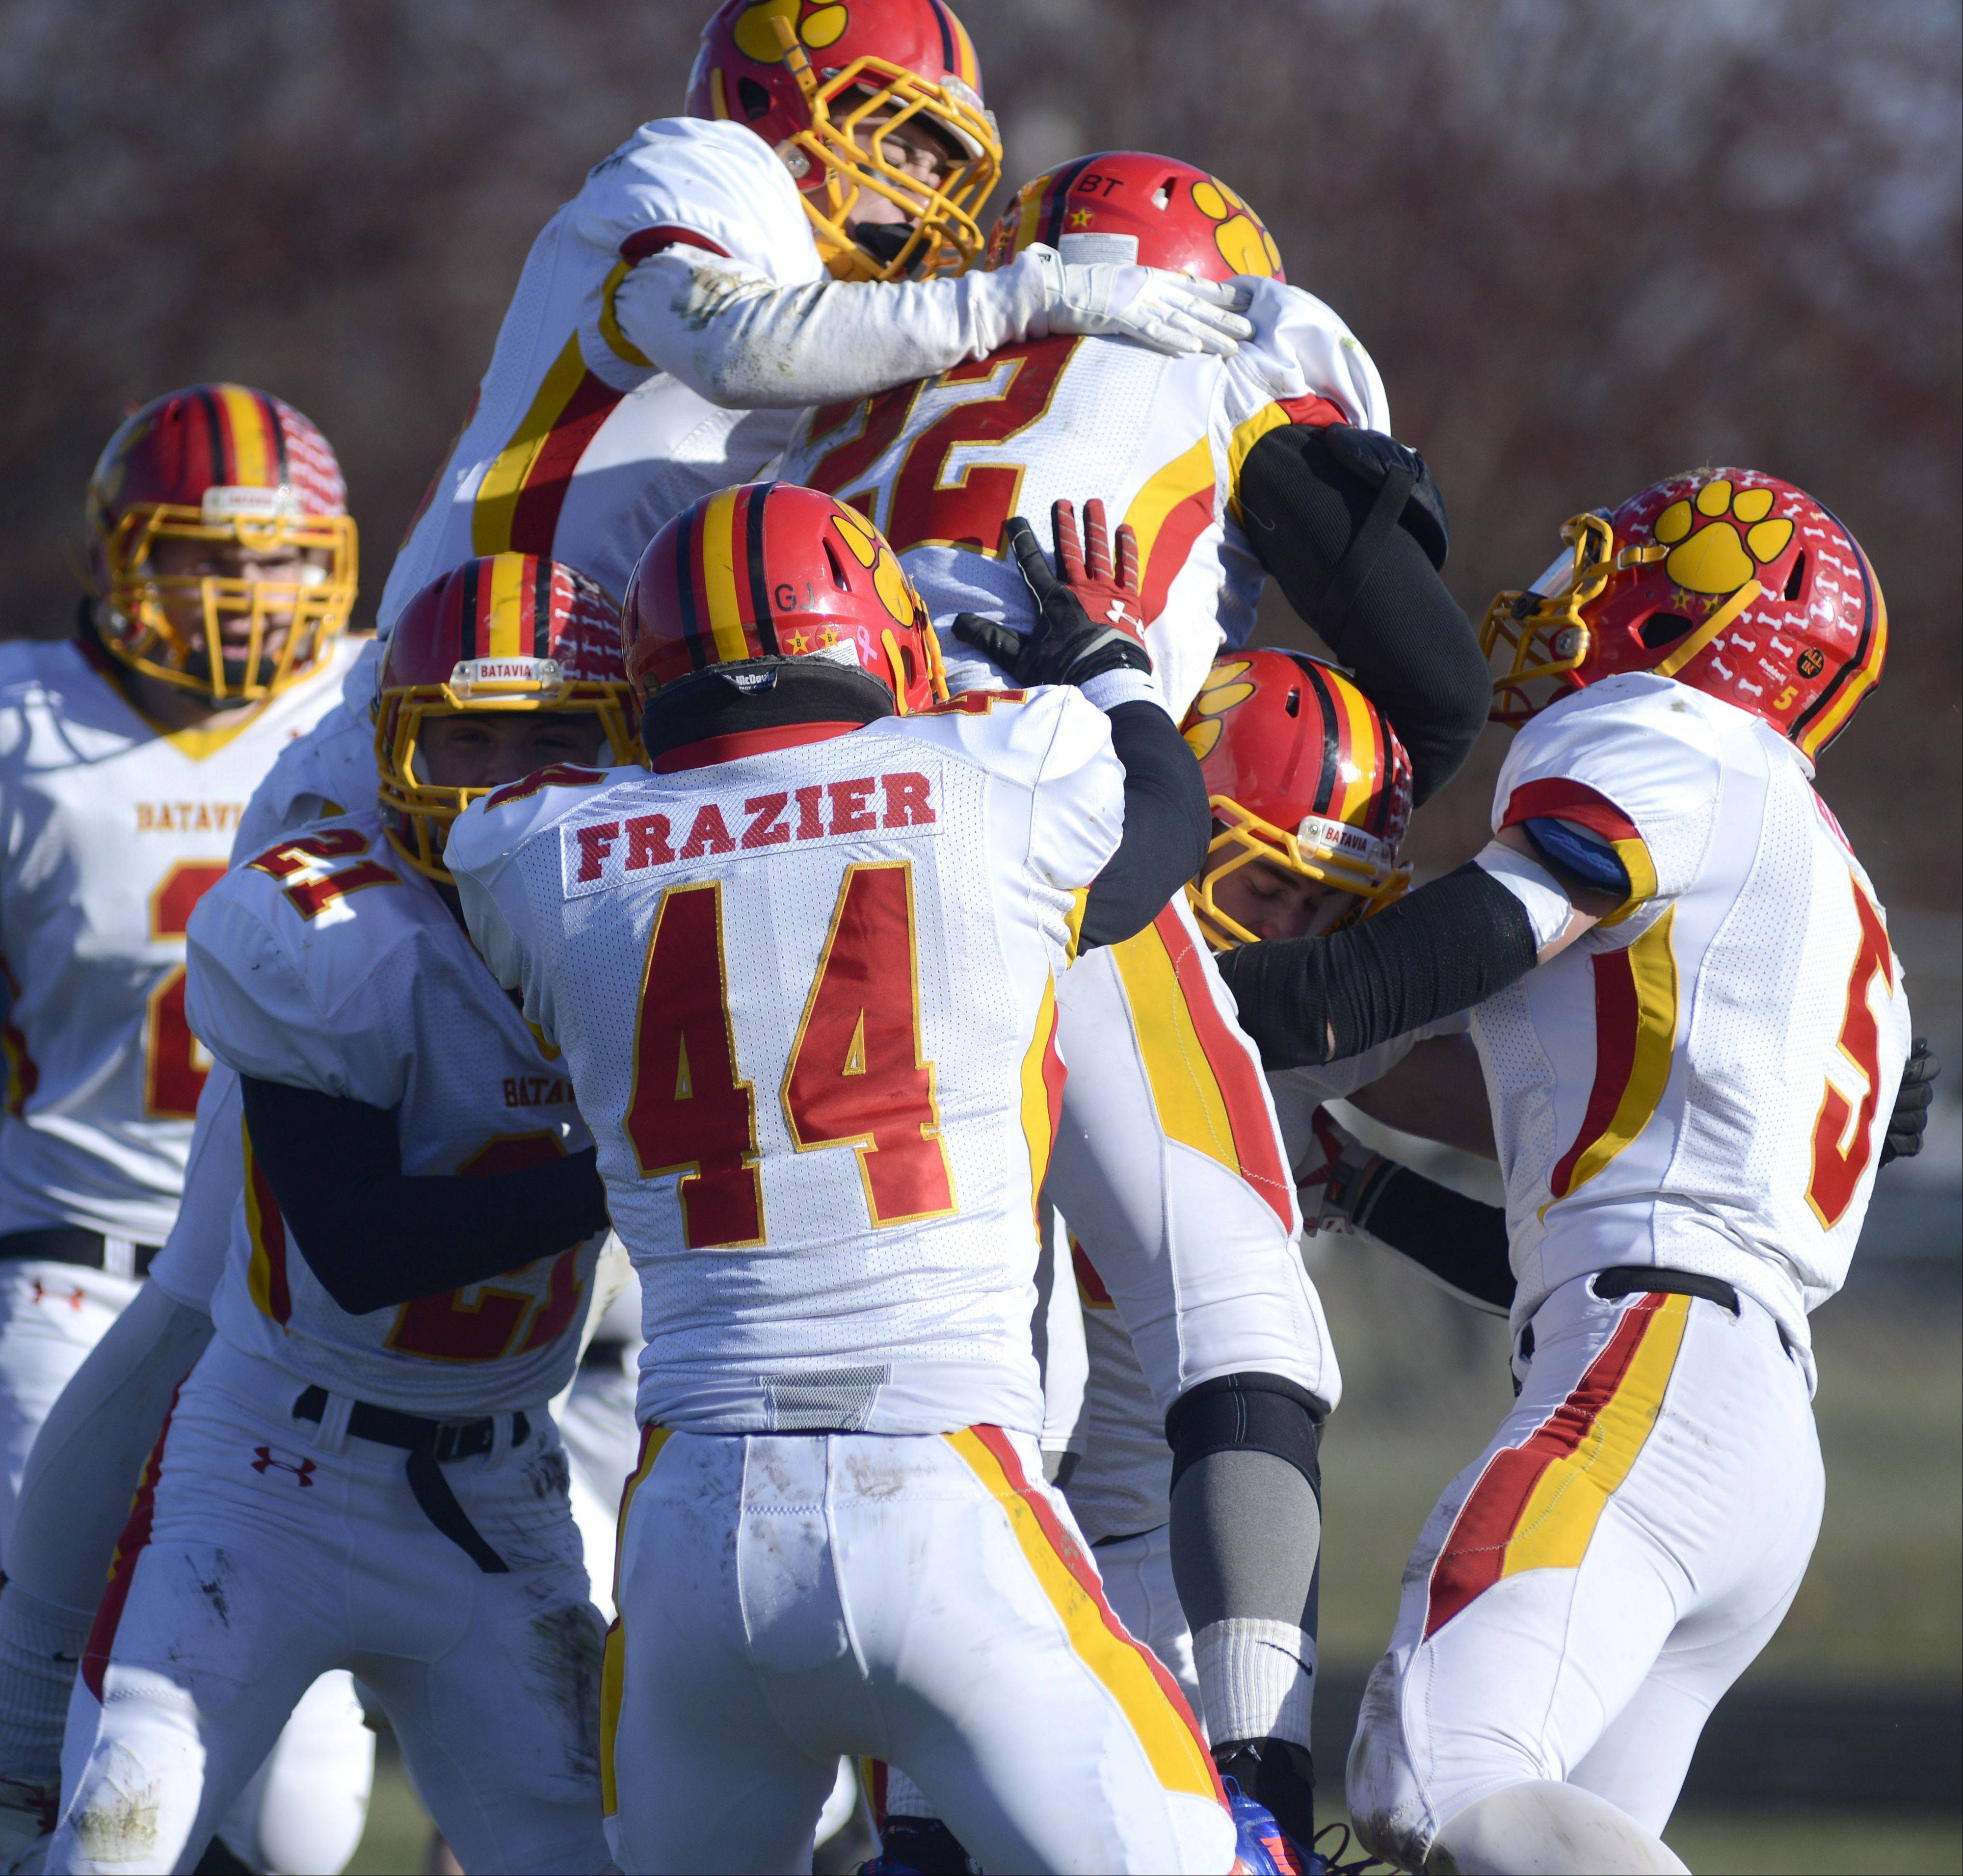 Batavia's Rourke Mullins is buried in a group celebration after scoring a touchdown on an interception in the second quarter of the Class 6A semifinal game vs. Rockford Boylan on Saturday, November 23.